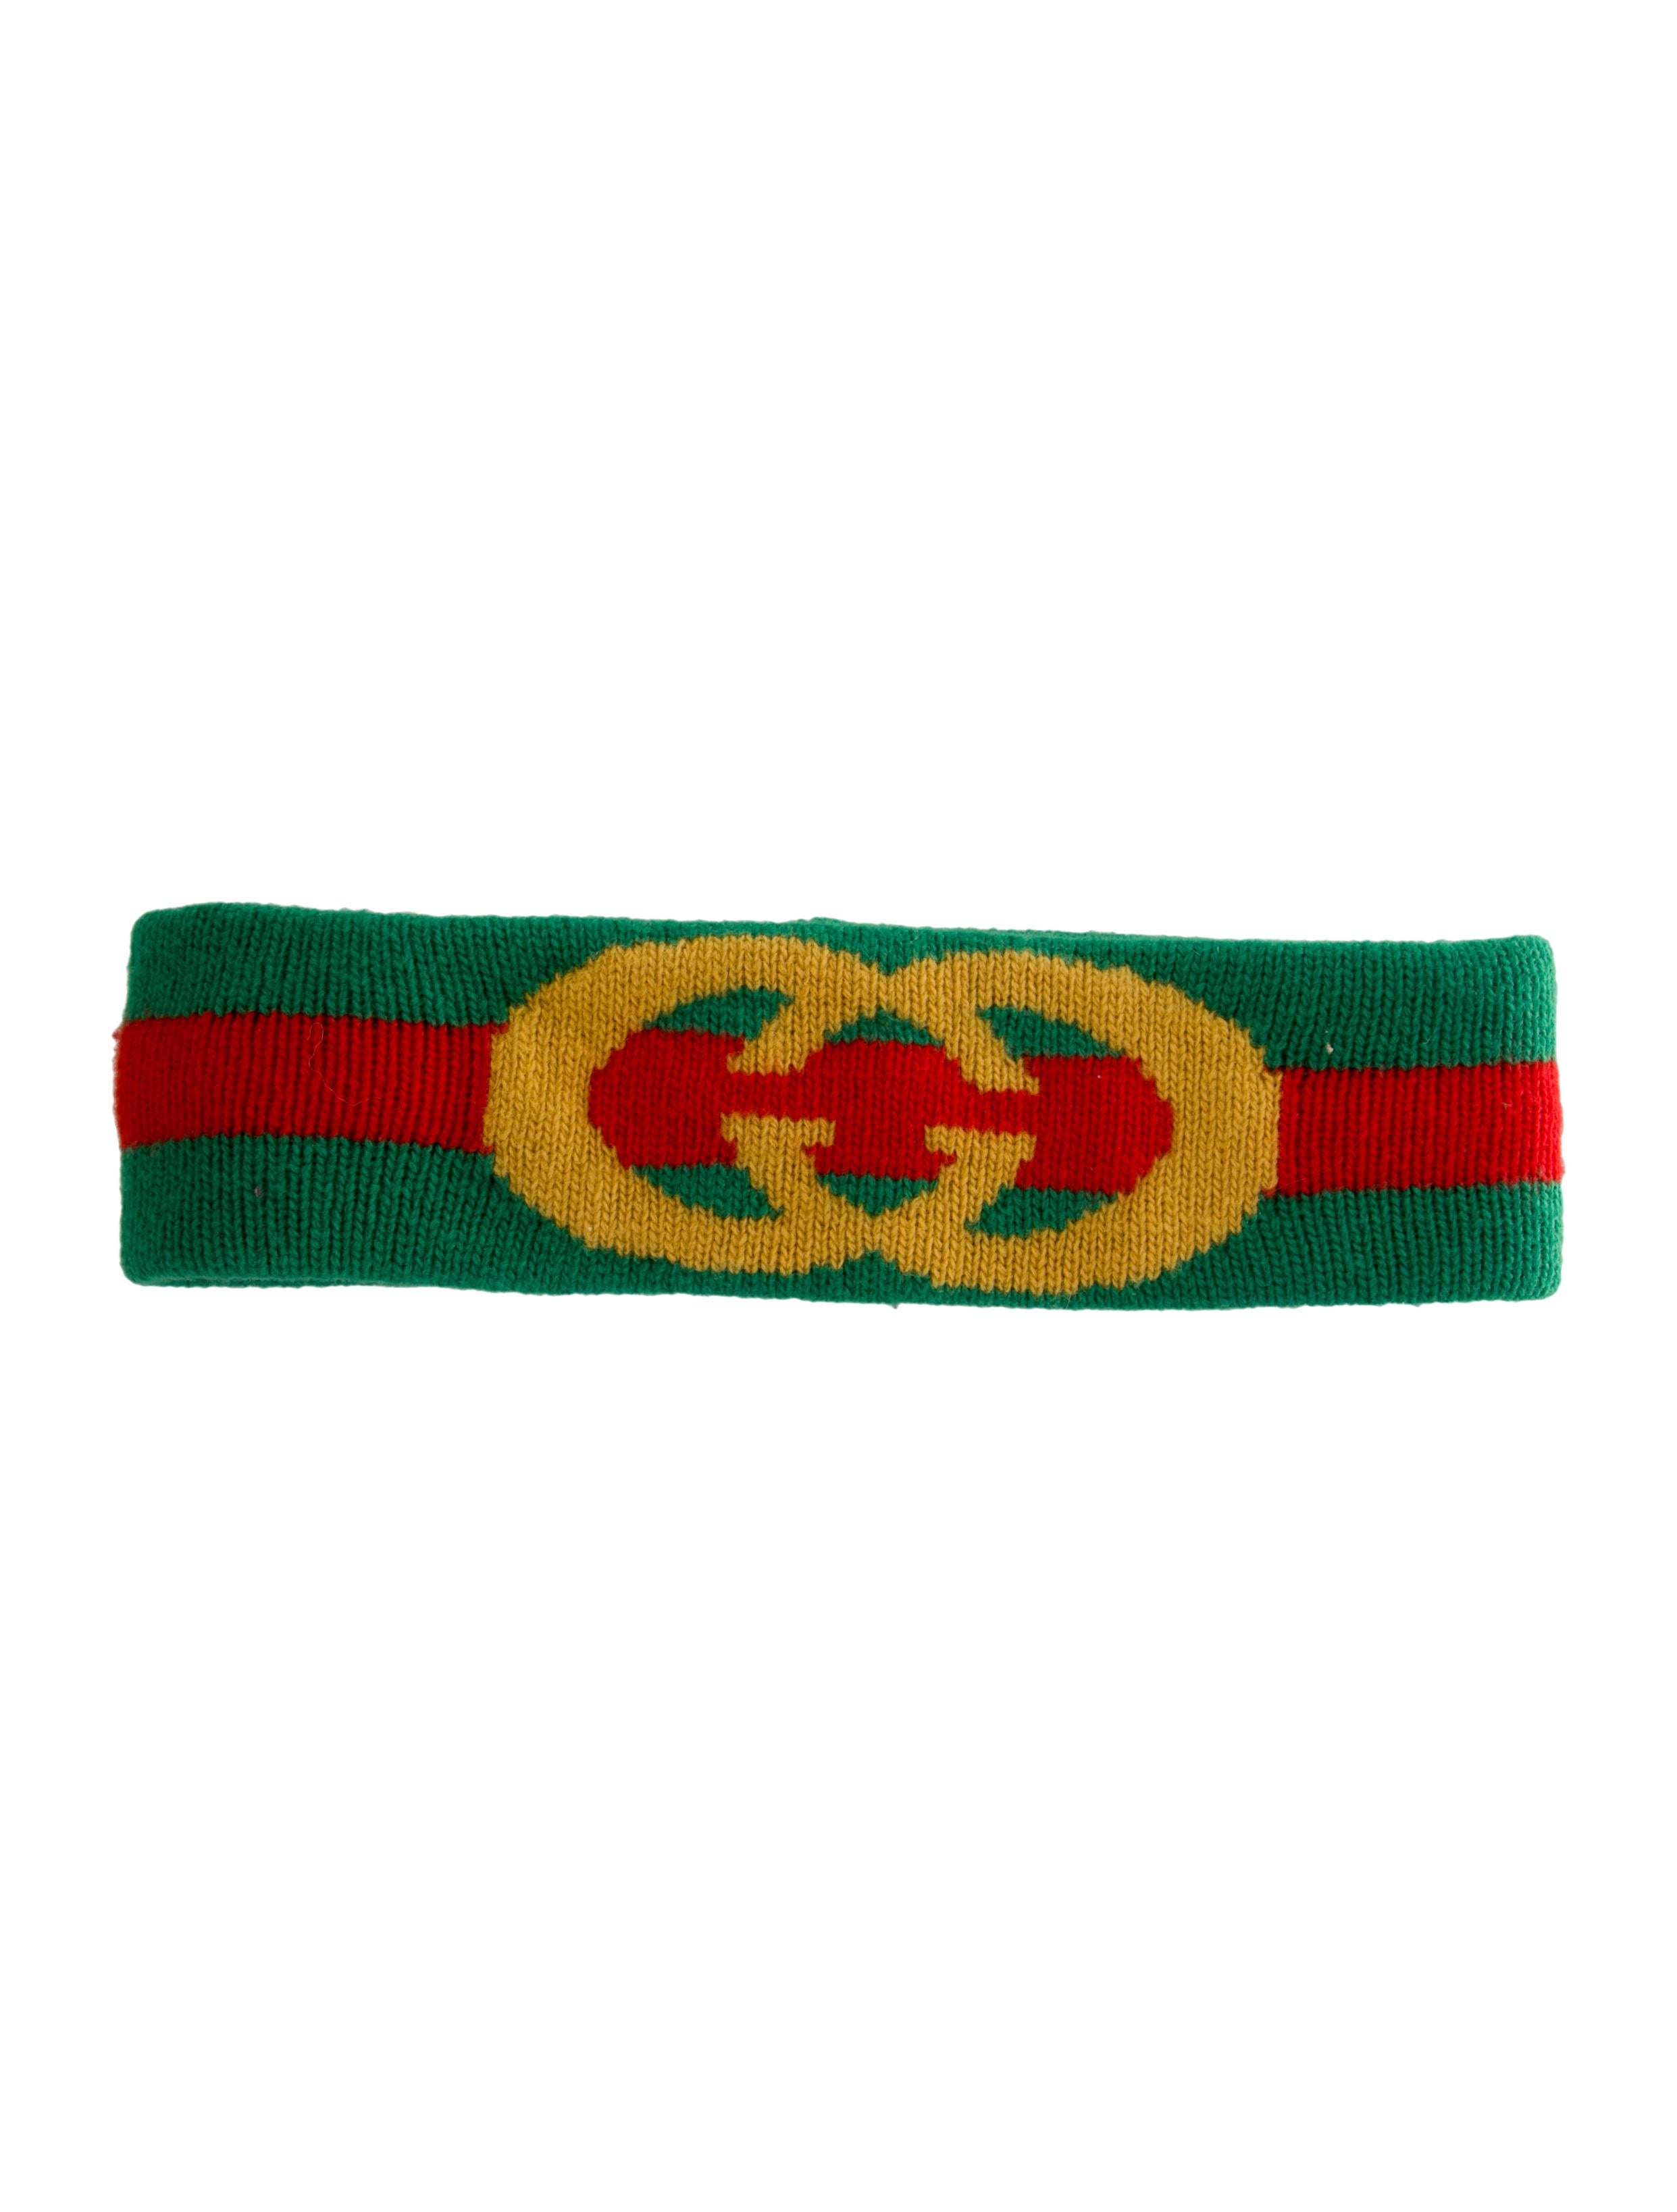 dbbda38898c Gucci GG Lock Web Headband - Accessories - GUC294509